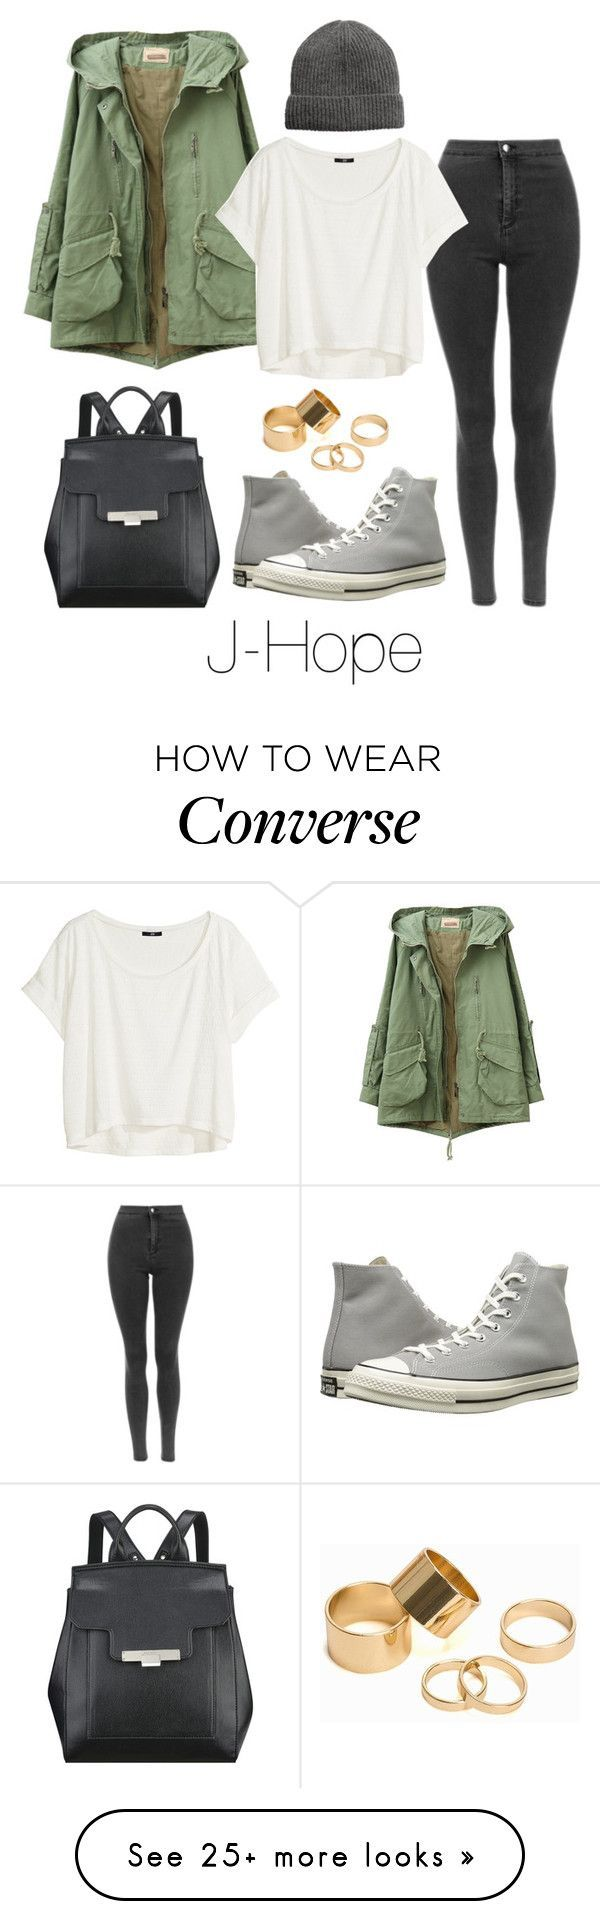 J-Hope Inspired w/ Converse by btsoutfits on Polyvore featuring H&M, Nine West, Pieces and Converse #schooloutfit